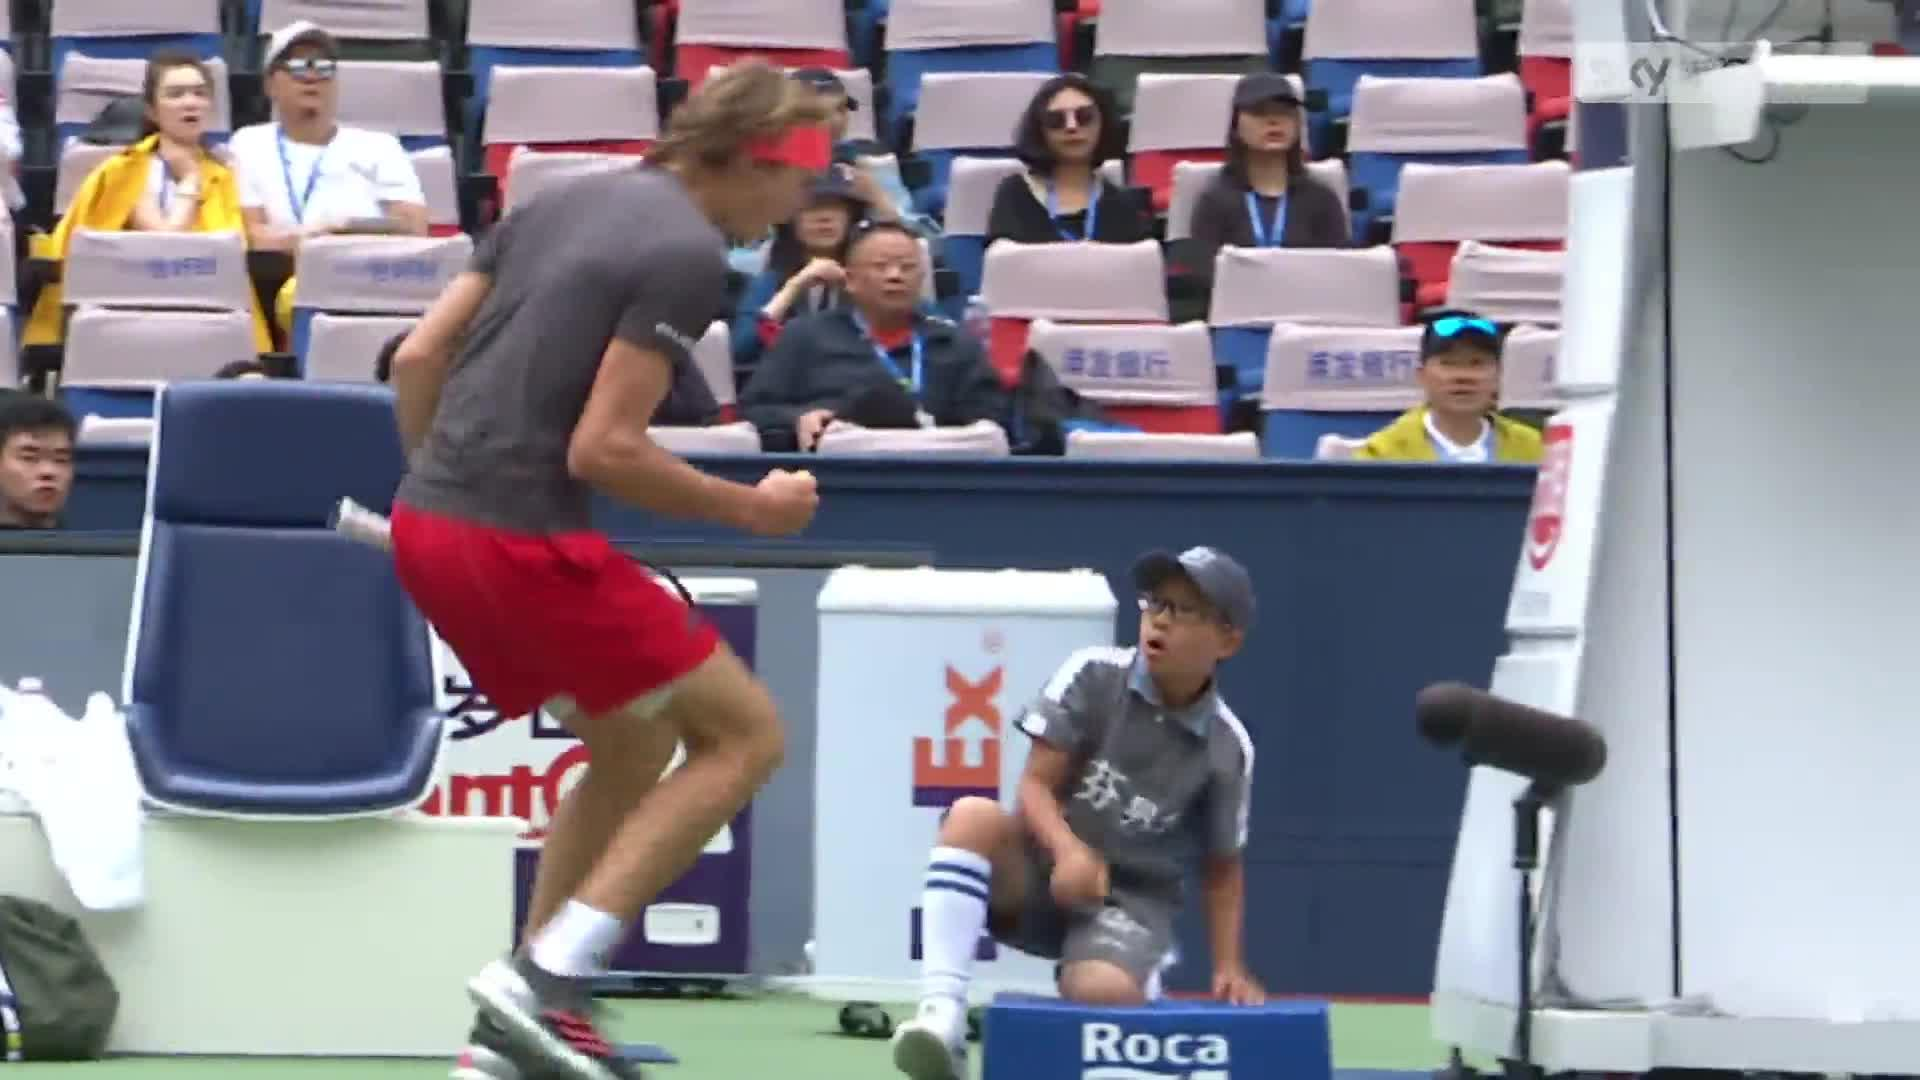 Alexander Zverev was passionate after winning a point - much to the poor lad's shock